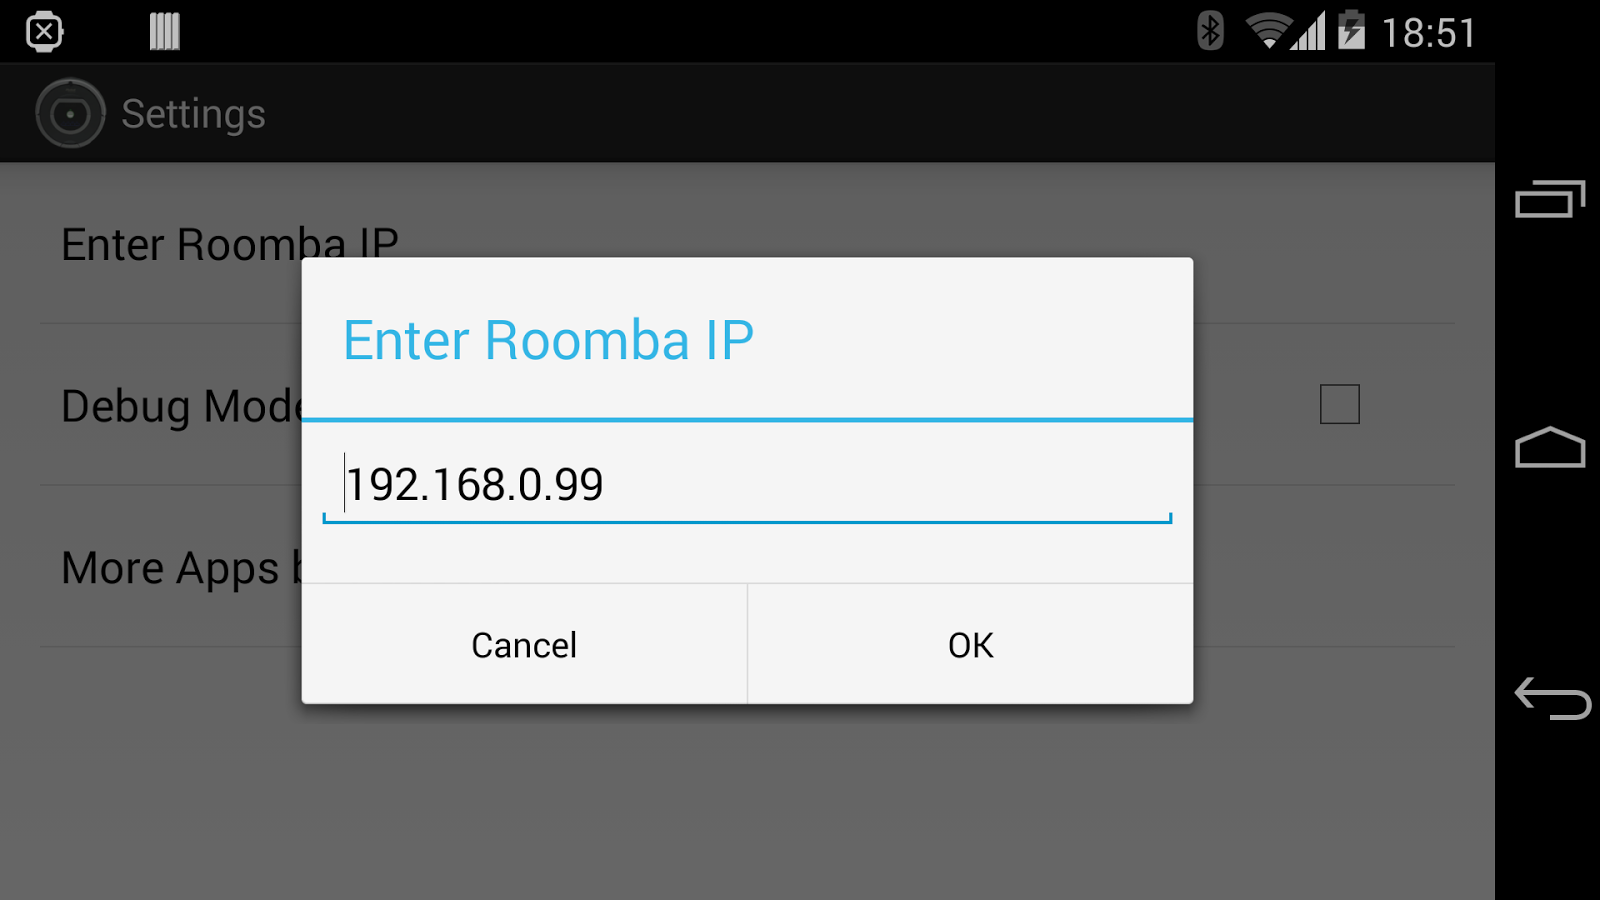 RooWifi: Wifi Remote for Roomba Android App - Configuration Screen